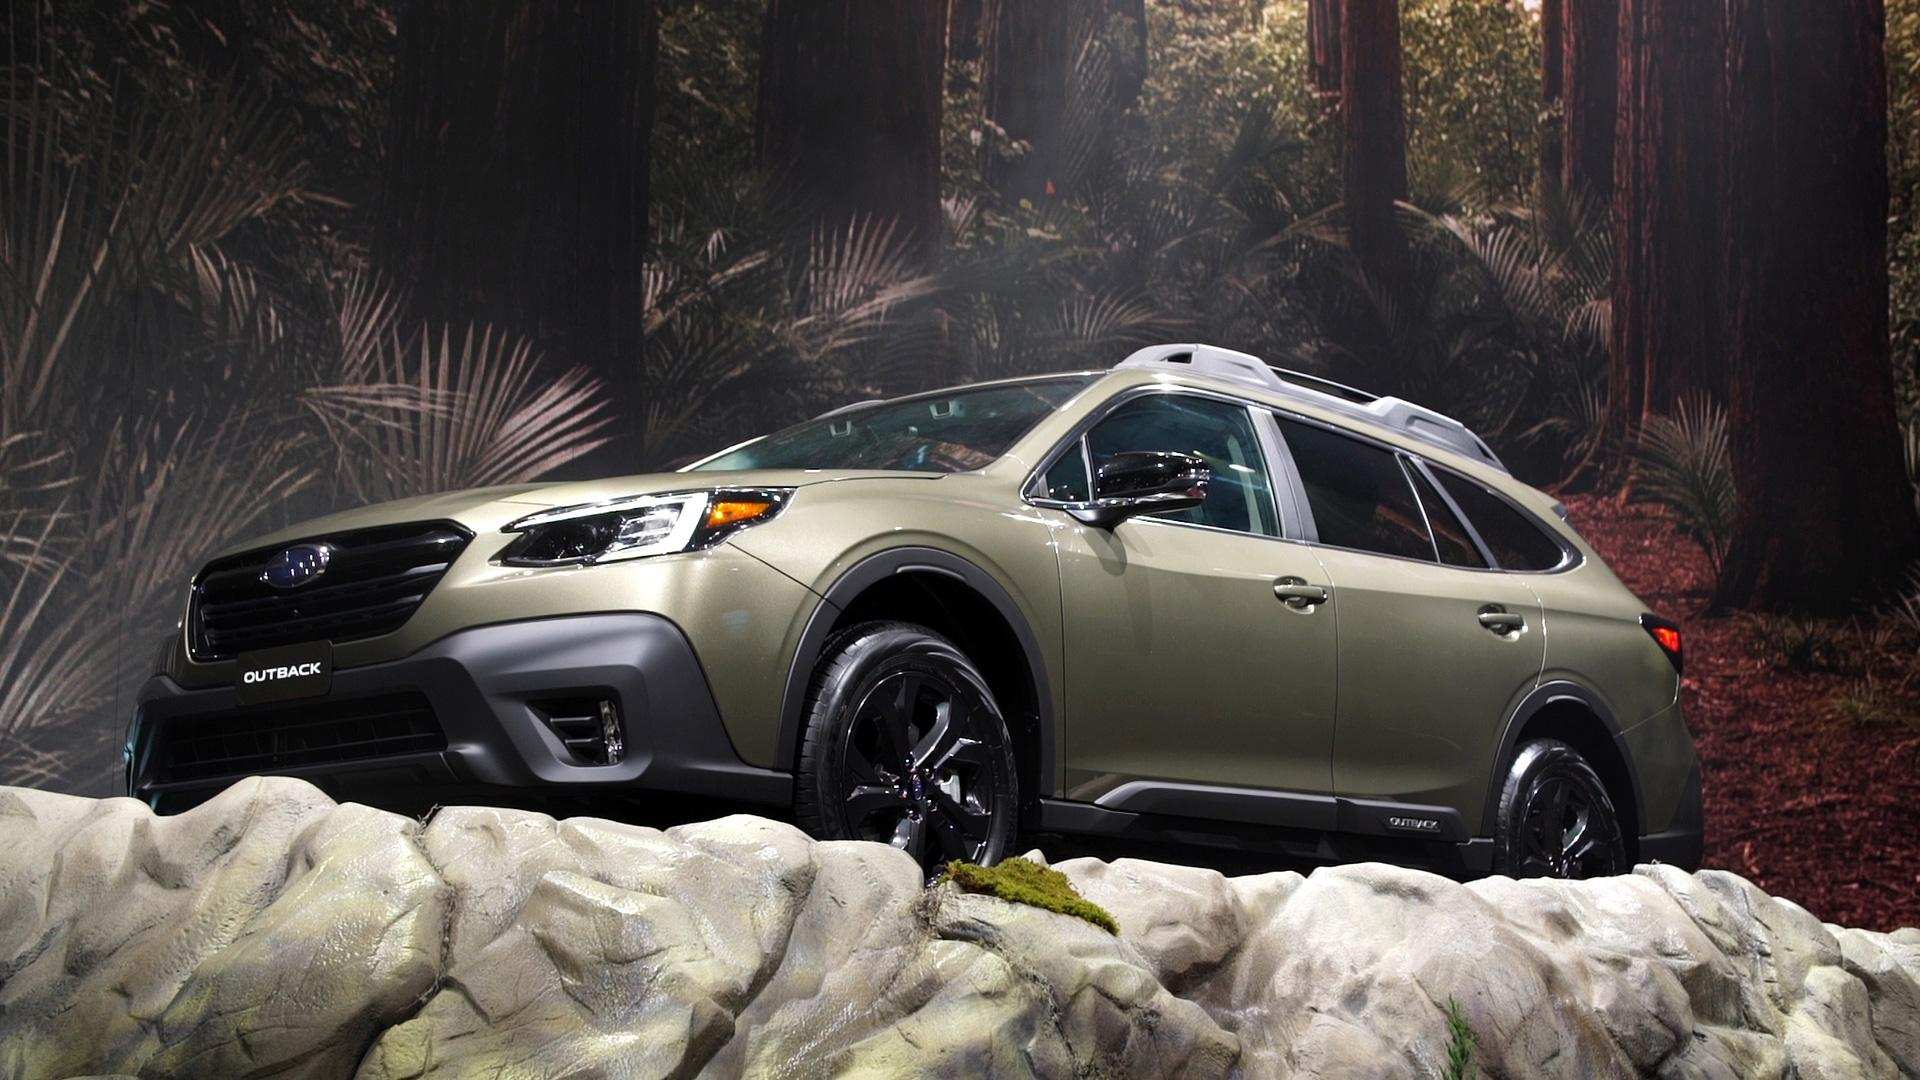 94 All New When Will 2020 Subaru Outback Be Available Configurations for When Will 2020 Subaru Outback Be Available